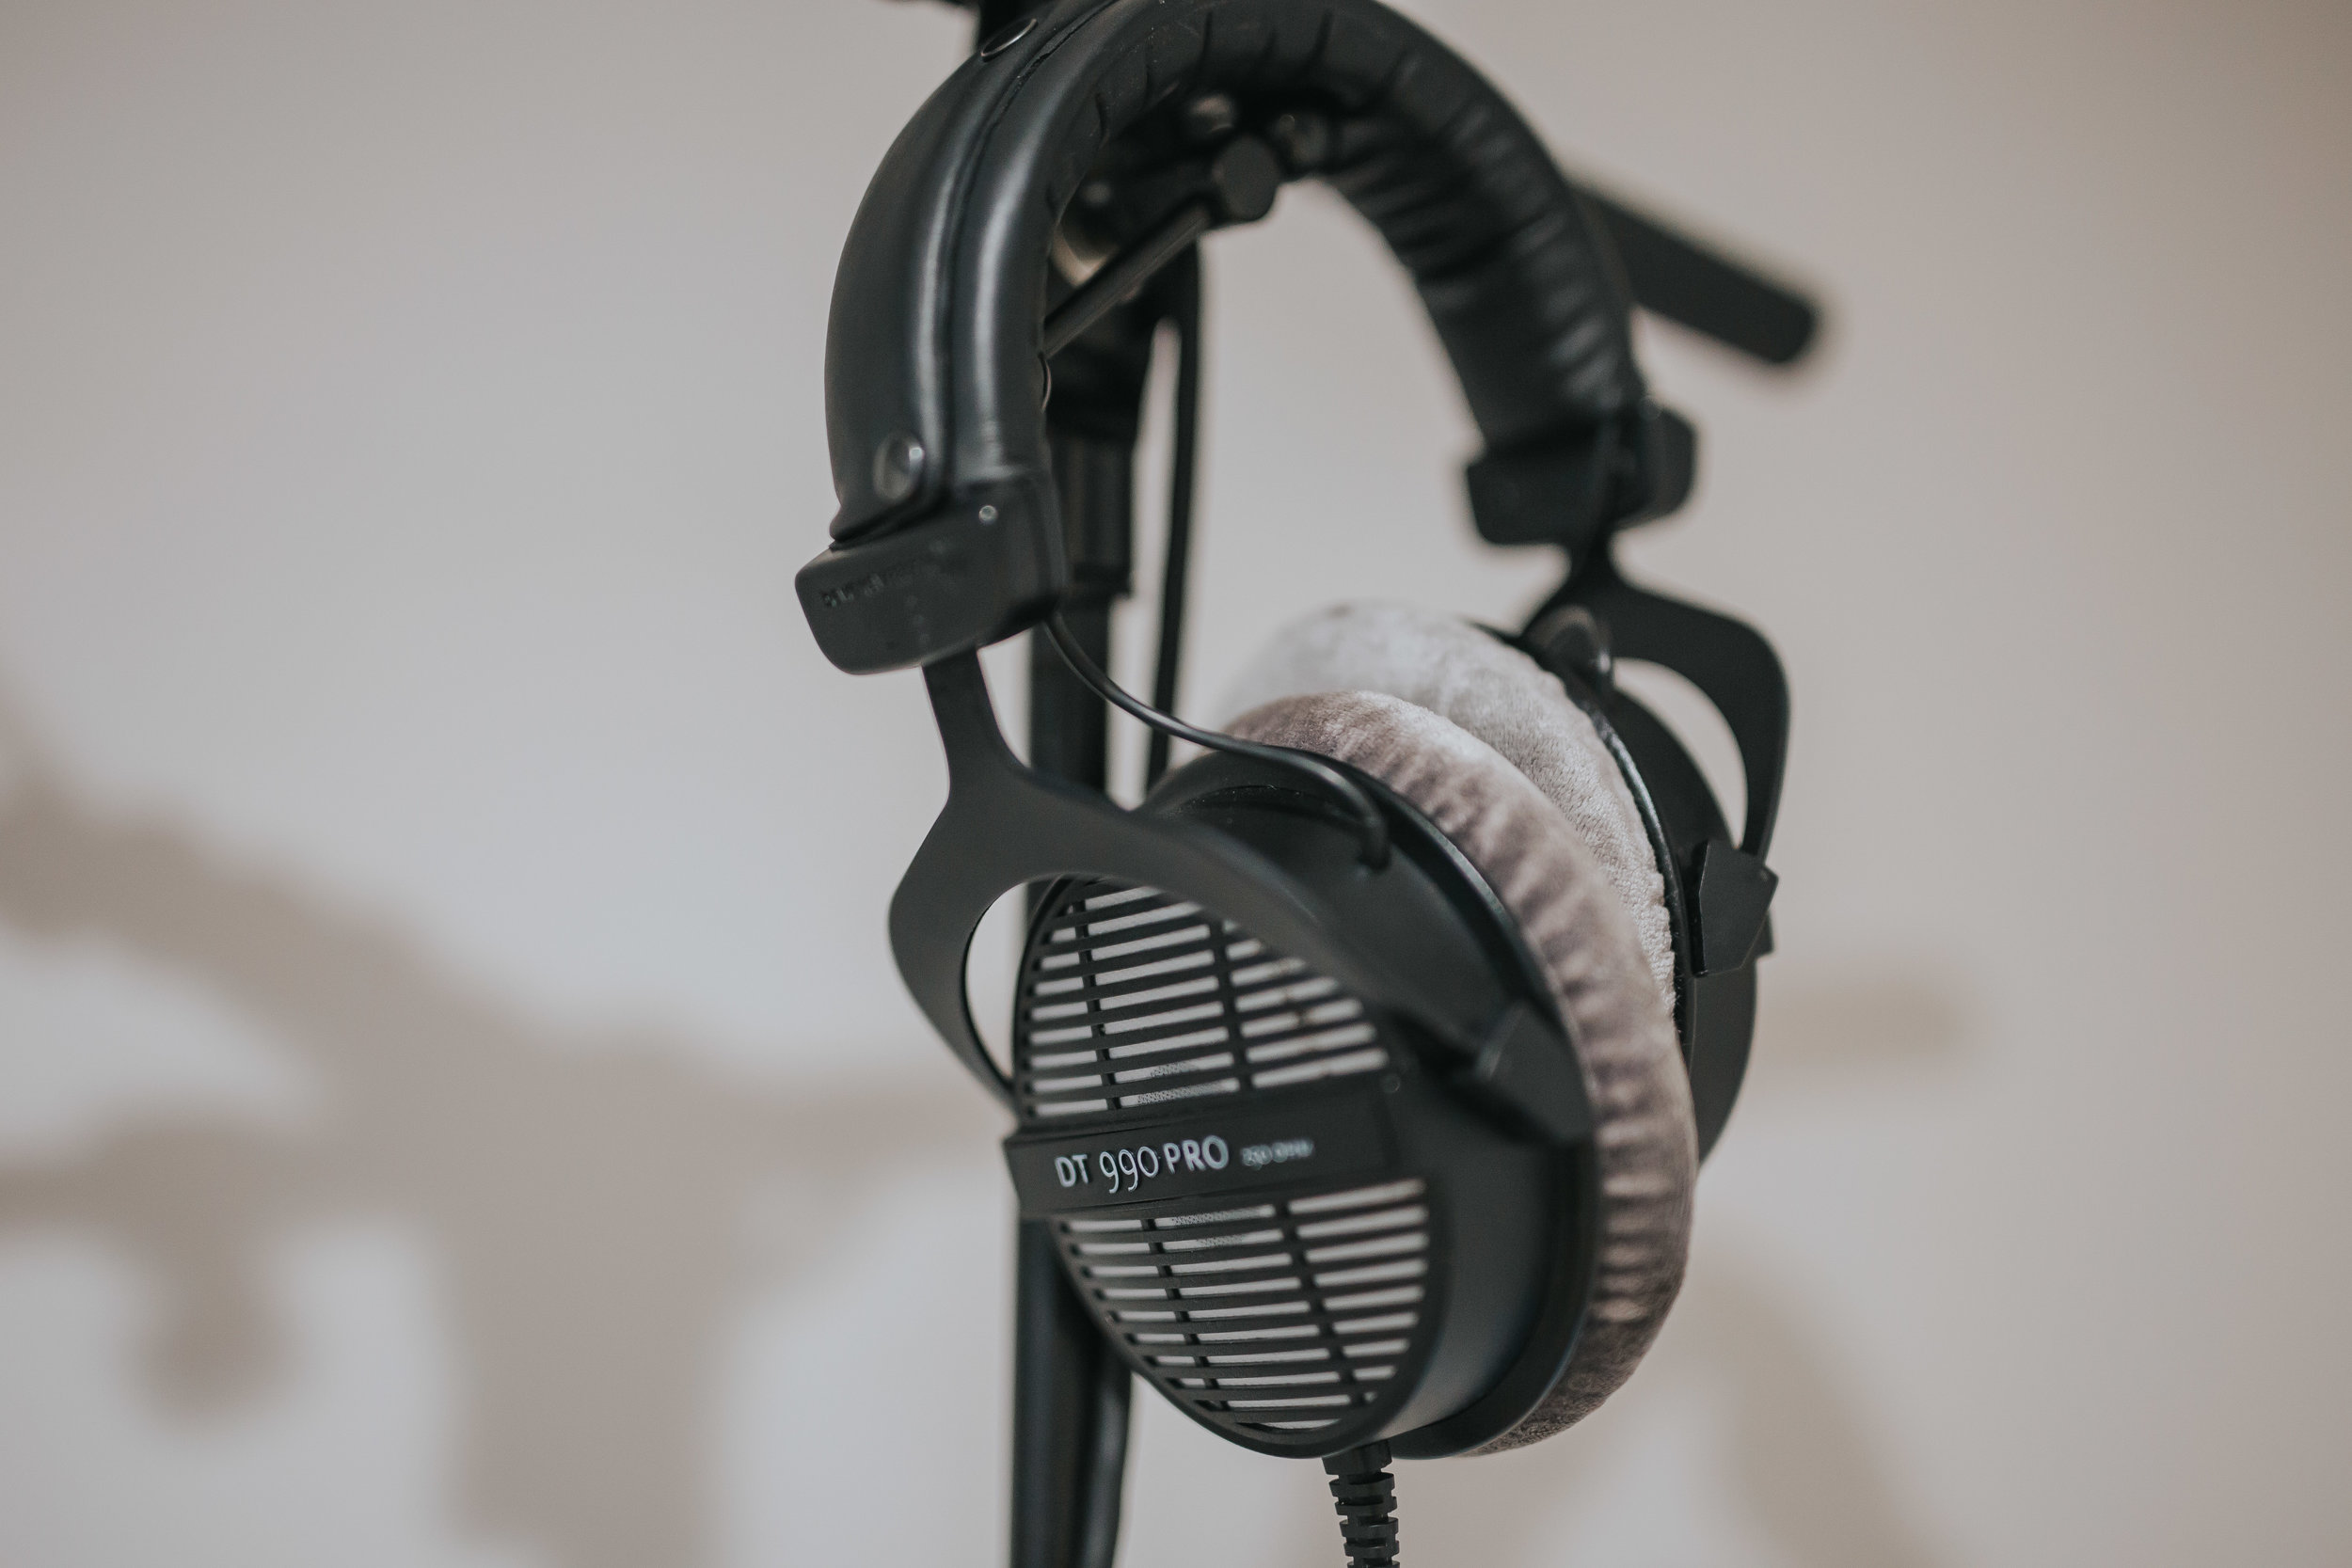 Beyerdynamic DT 990 Pro Headphones | The Barn Studio | Photo by Ian Wallman